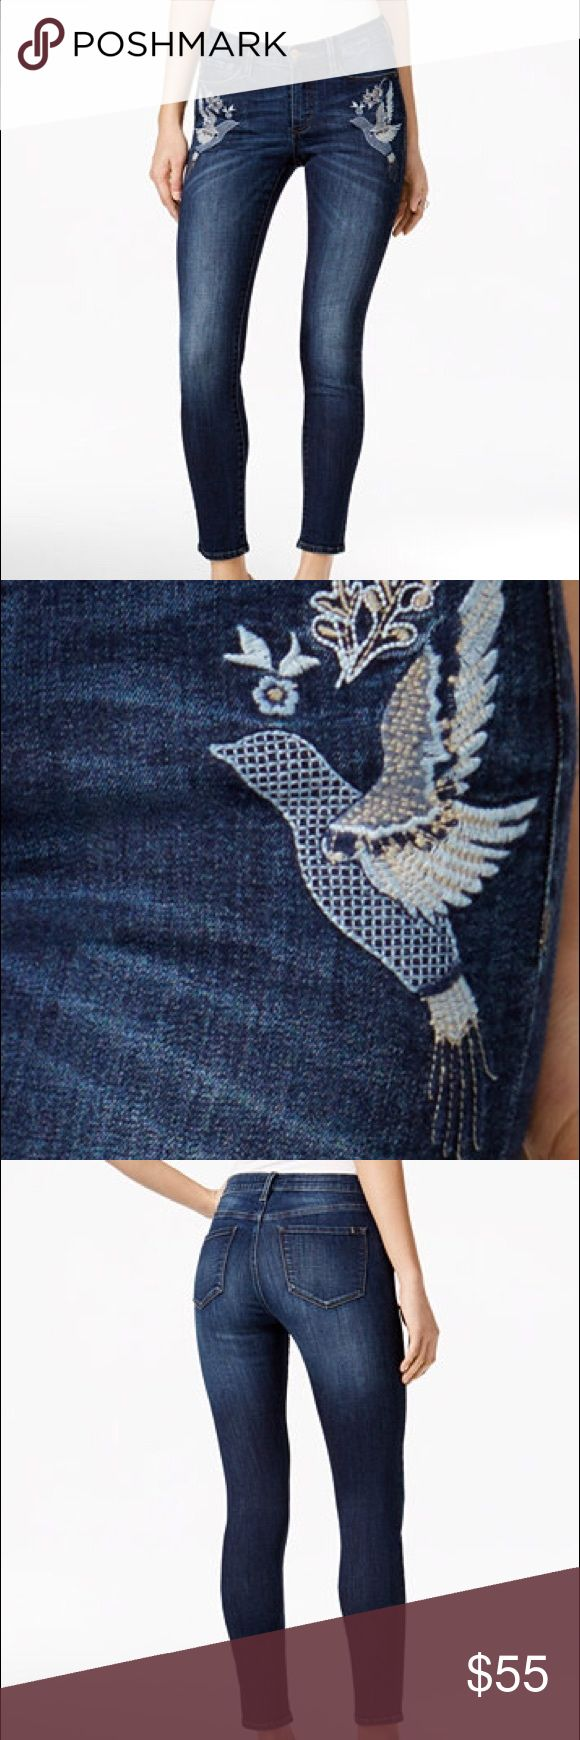 Buffalo David Bitton Faith Embroidered Skinny Jean Buffalo David Bitton Faith Embroidered Skinny Jeans Up the chic style of your denim collection with Buffalo David Bitton's bird-embroidered Faith skinny jeans Buffalo David Bitton Jeans Skinny